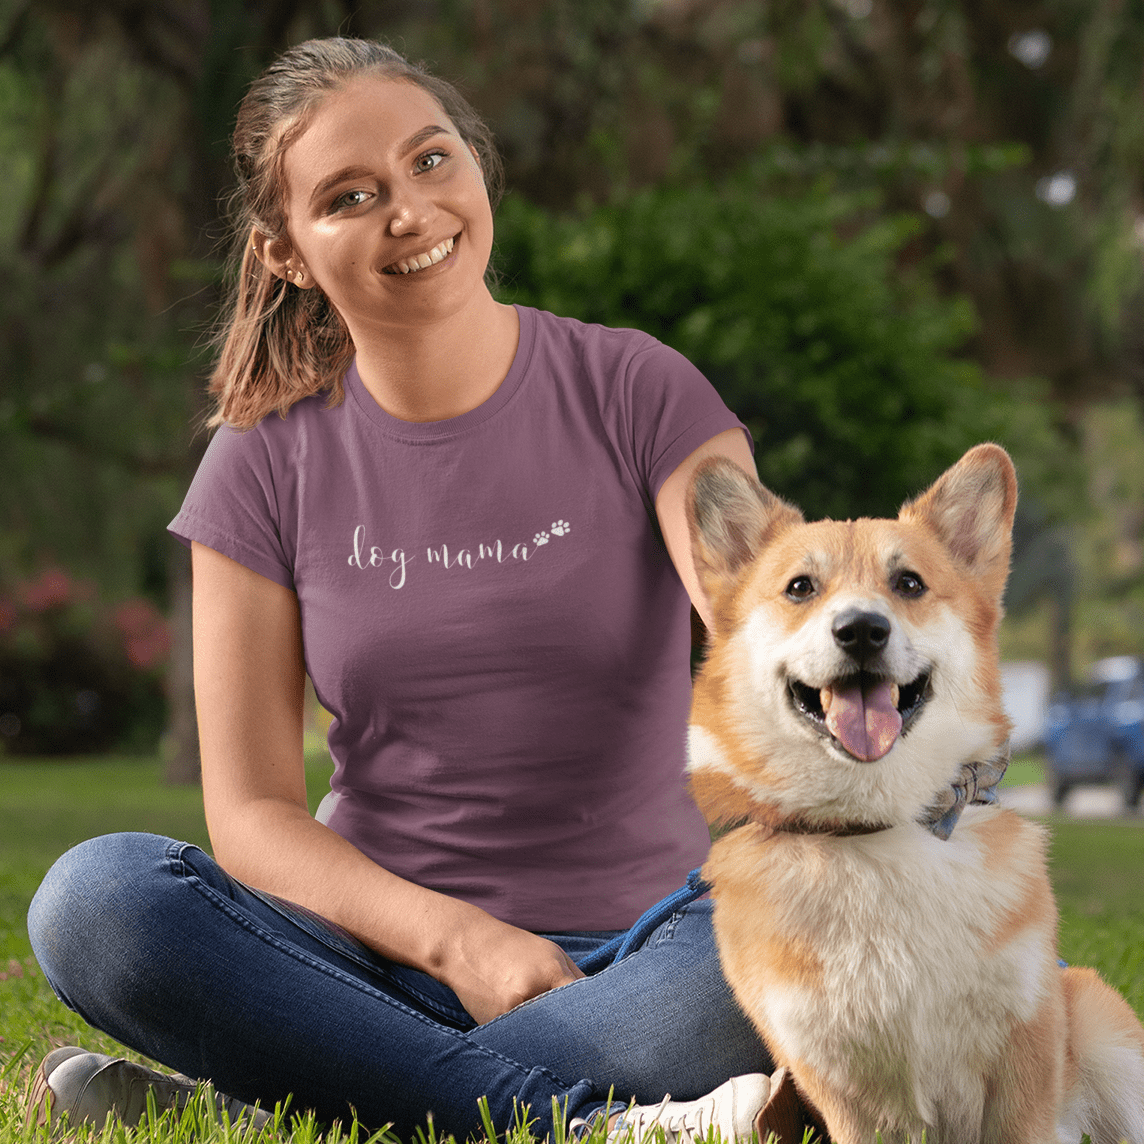 Dog Mama Short Sleeves Shirt